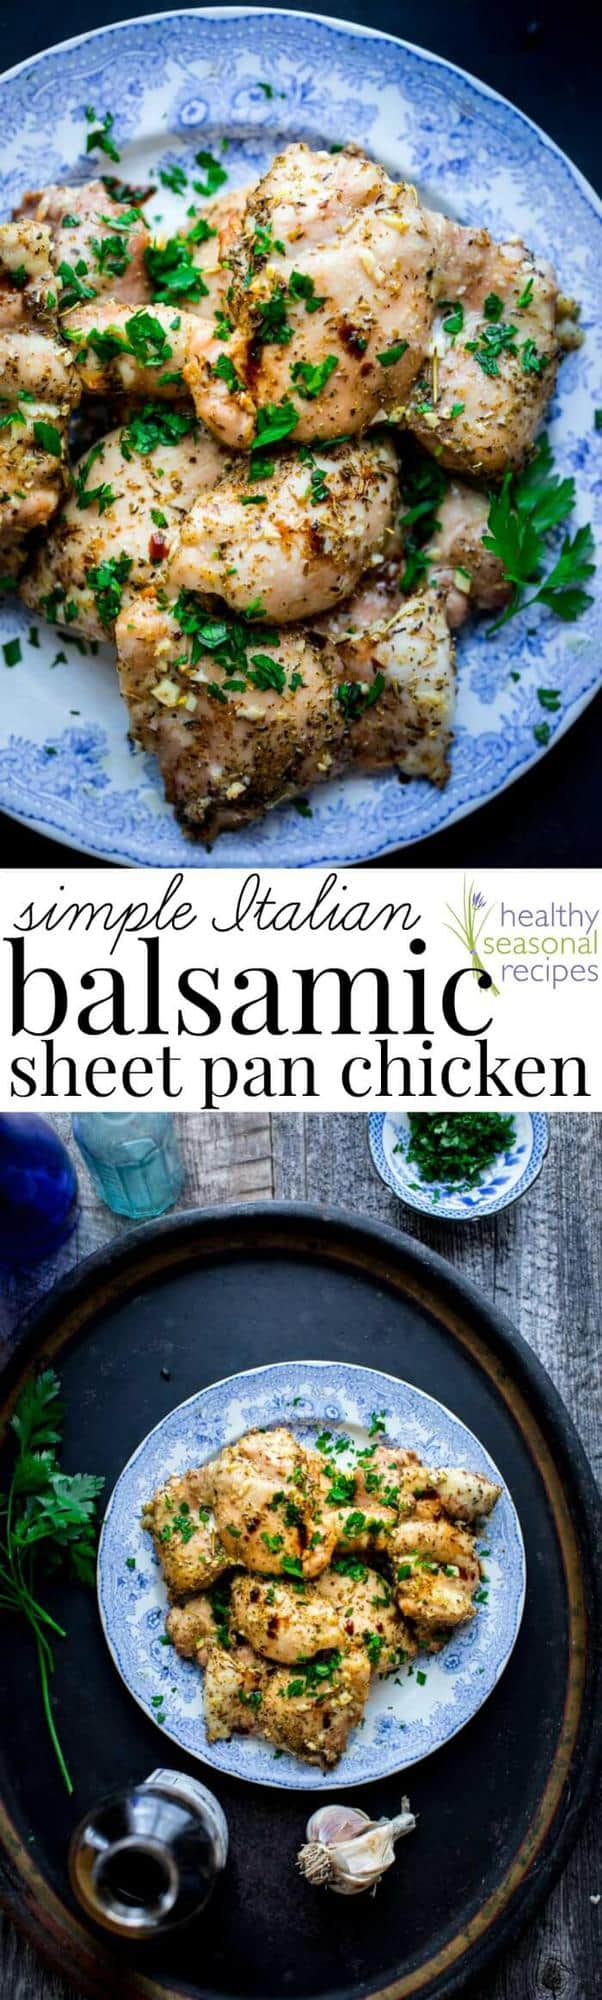 Chicken thighs on a blue plate and text